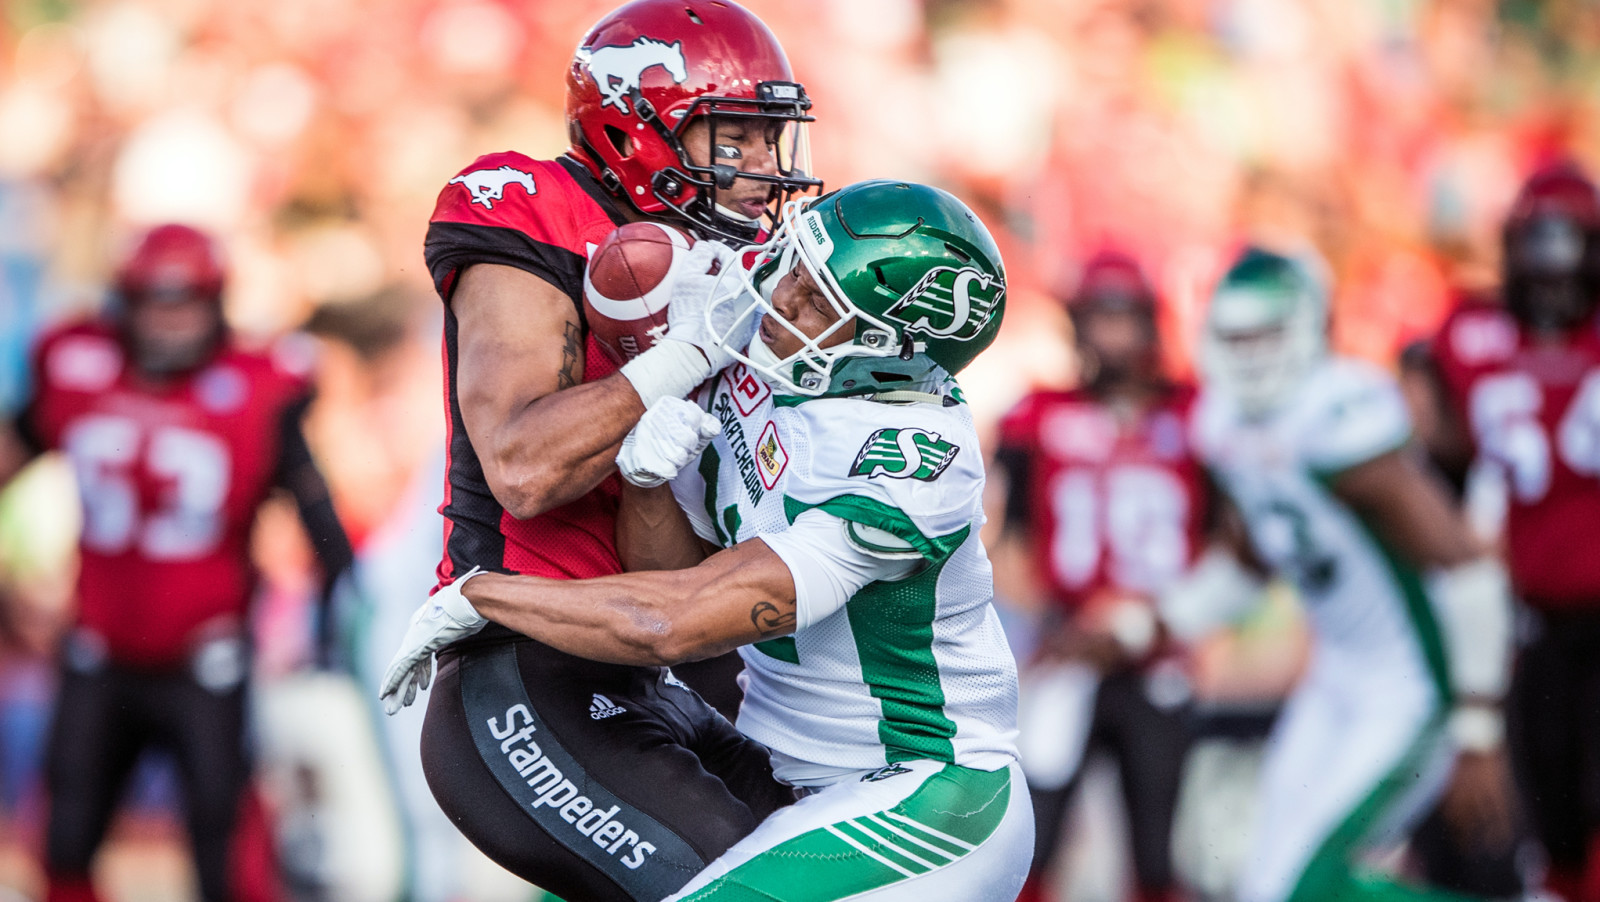 Justin Cox released from Riders after another domestic violence arrest